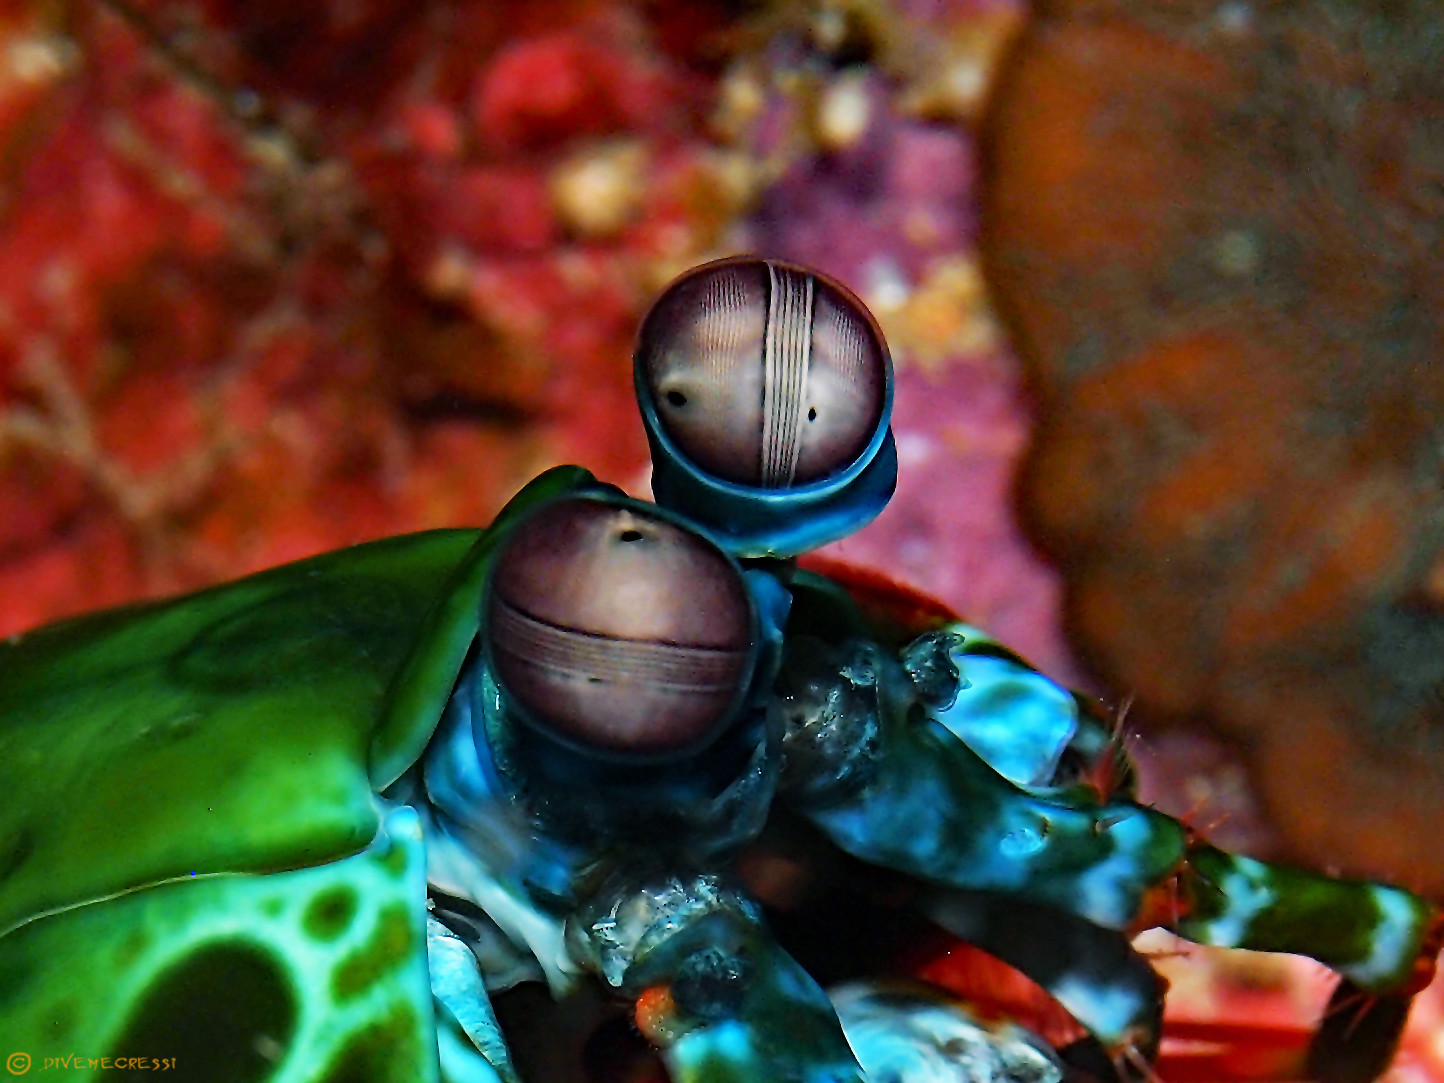 Eyes of Peacock Mantis Shrimp